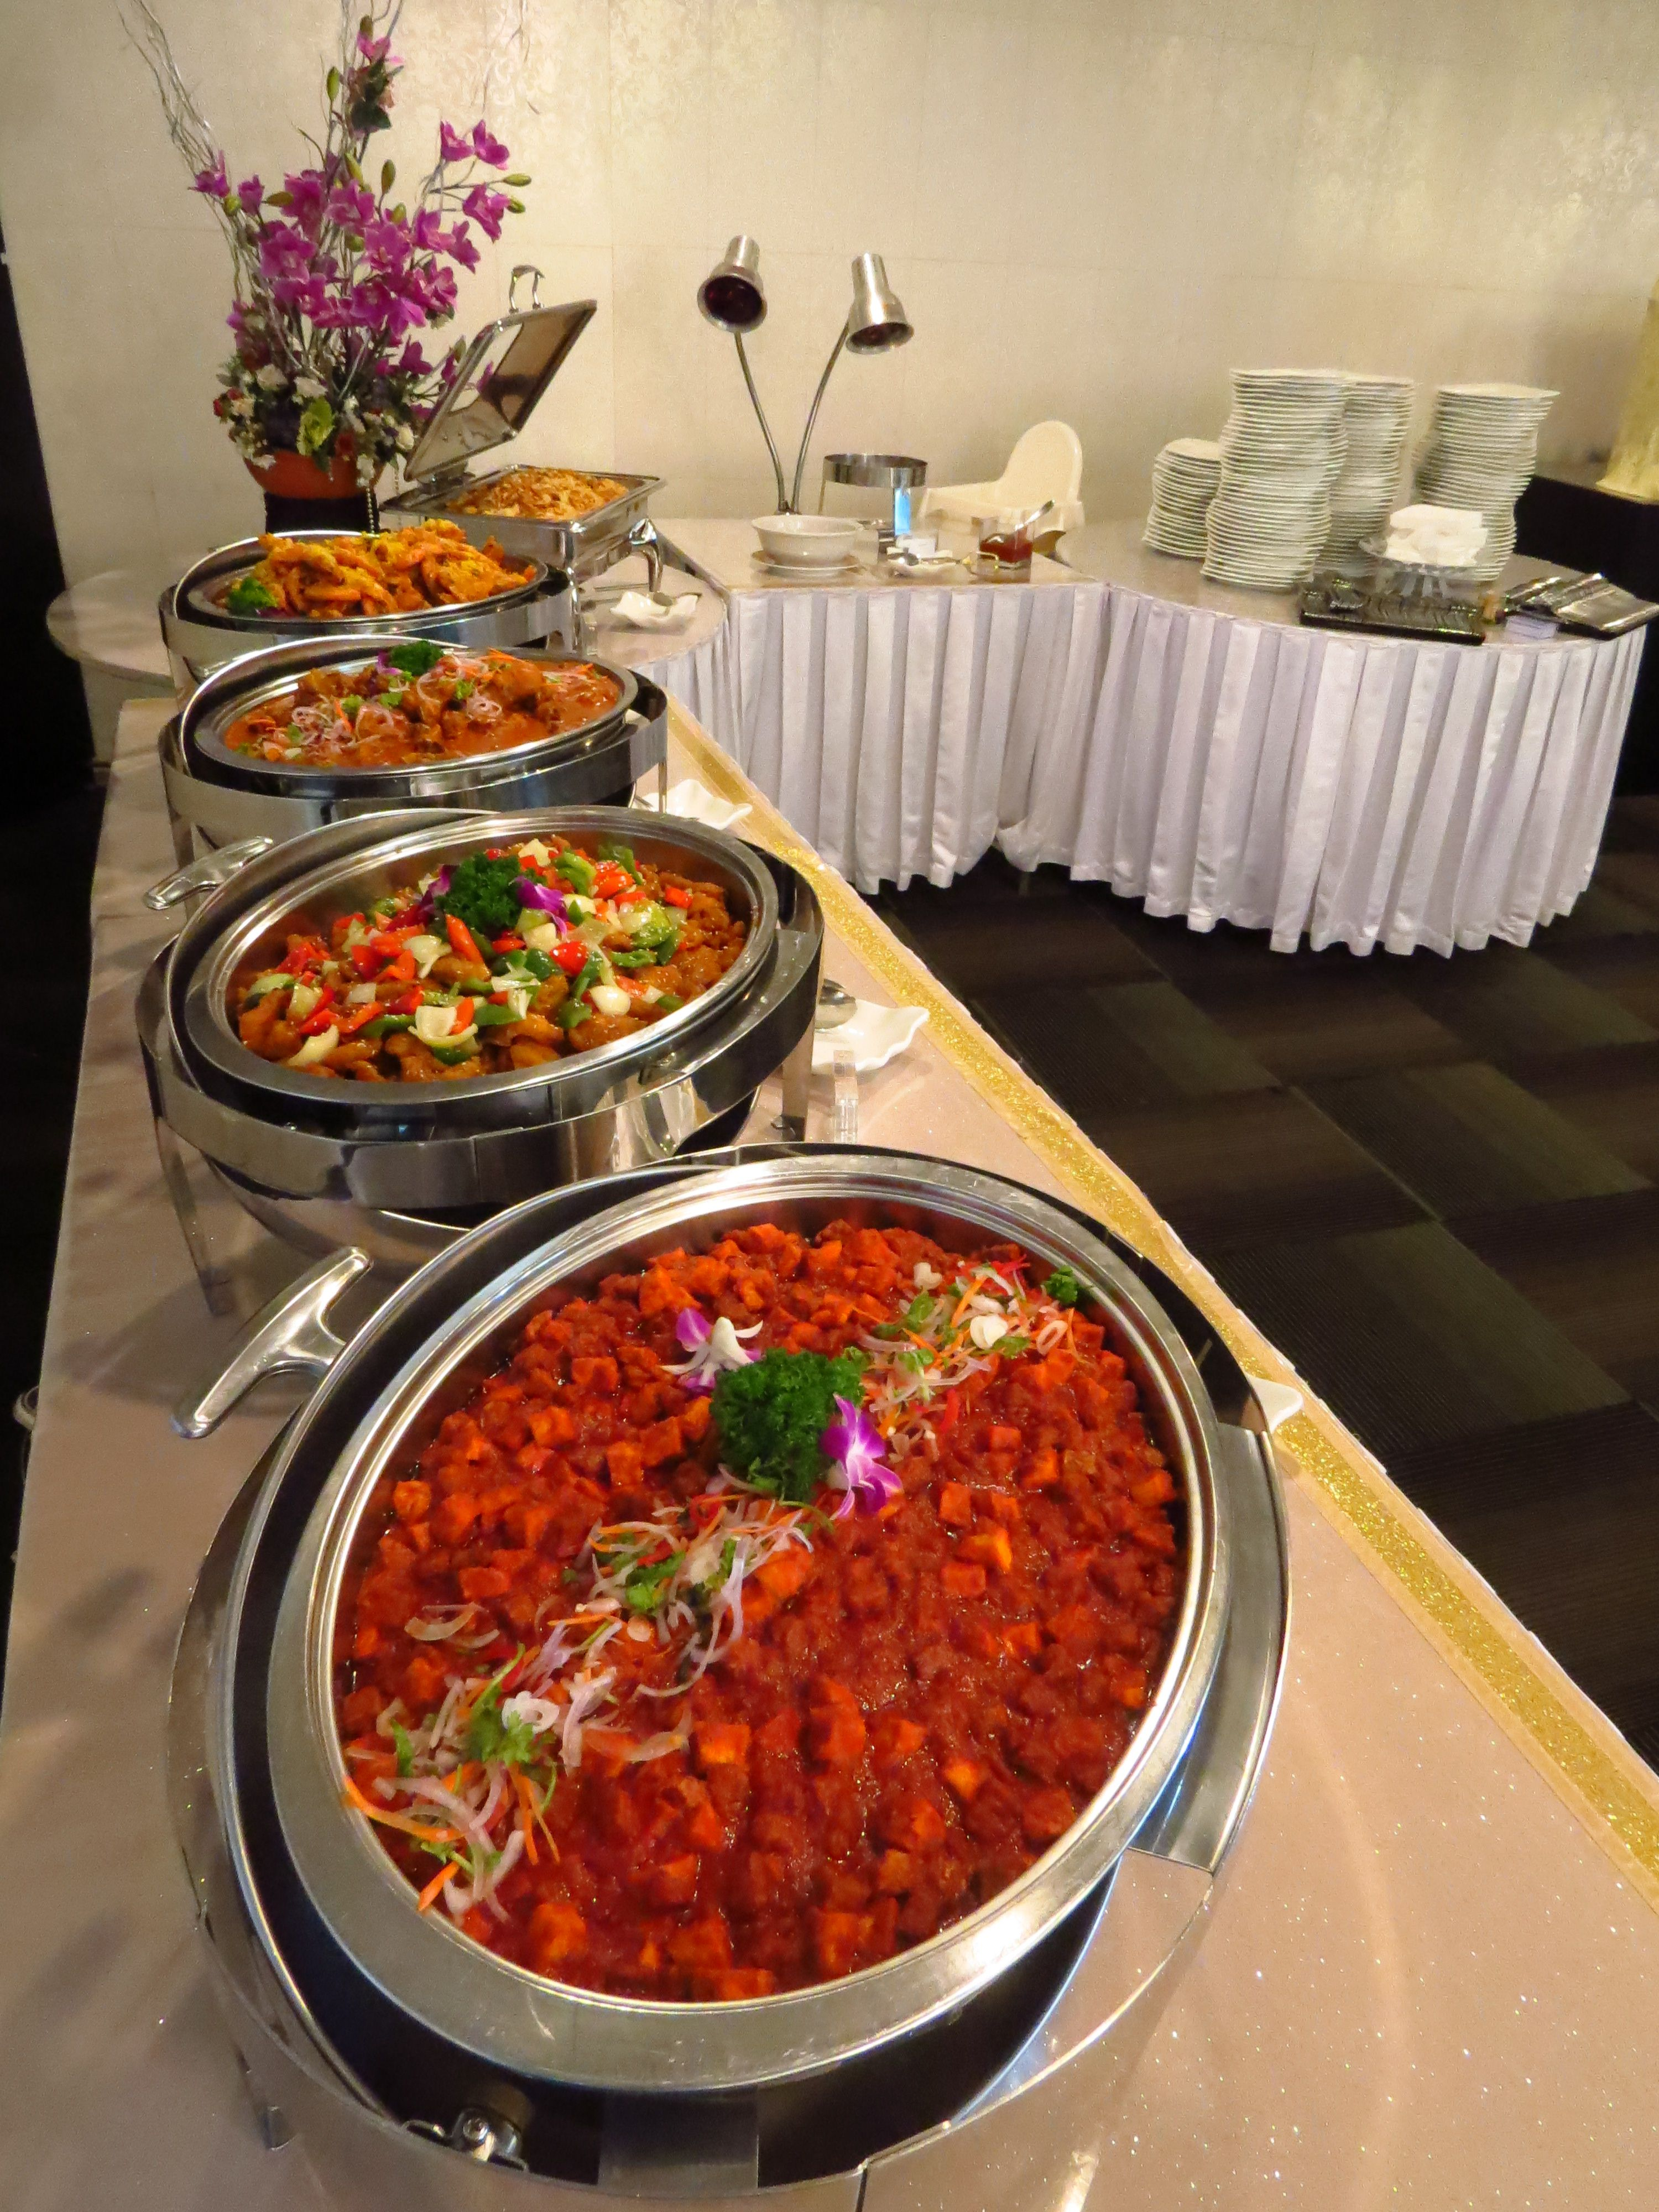 WEDDING BANQUET STYLE Almost Every Malay Wedding Will Be Held In A Free And